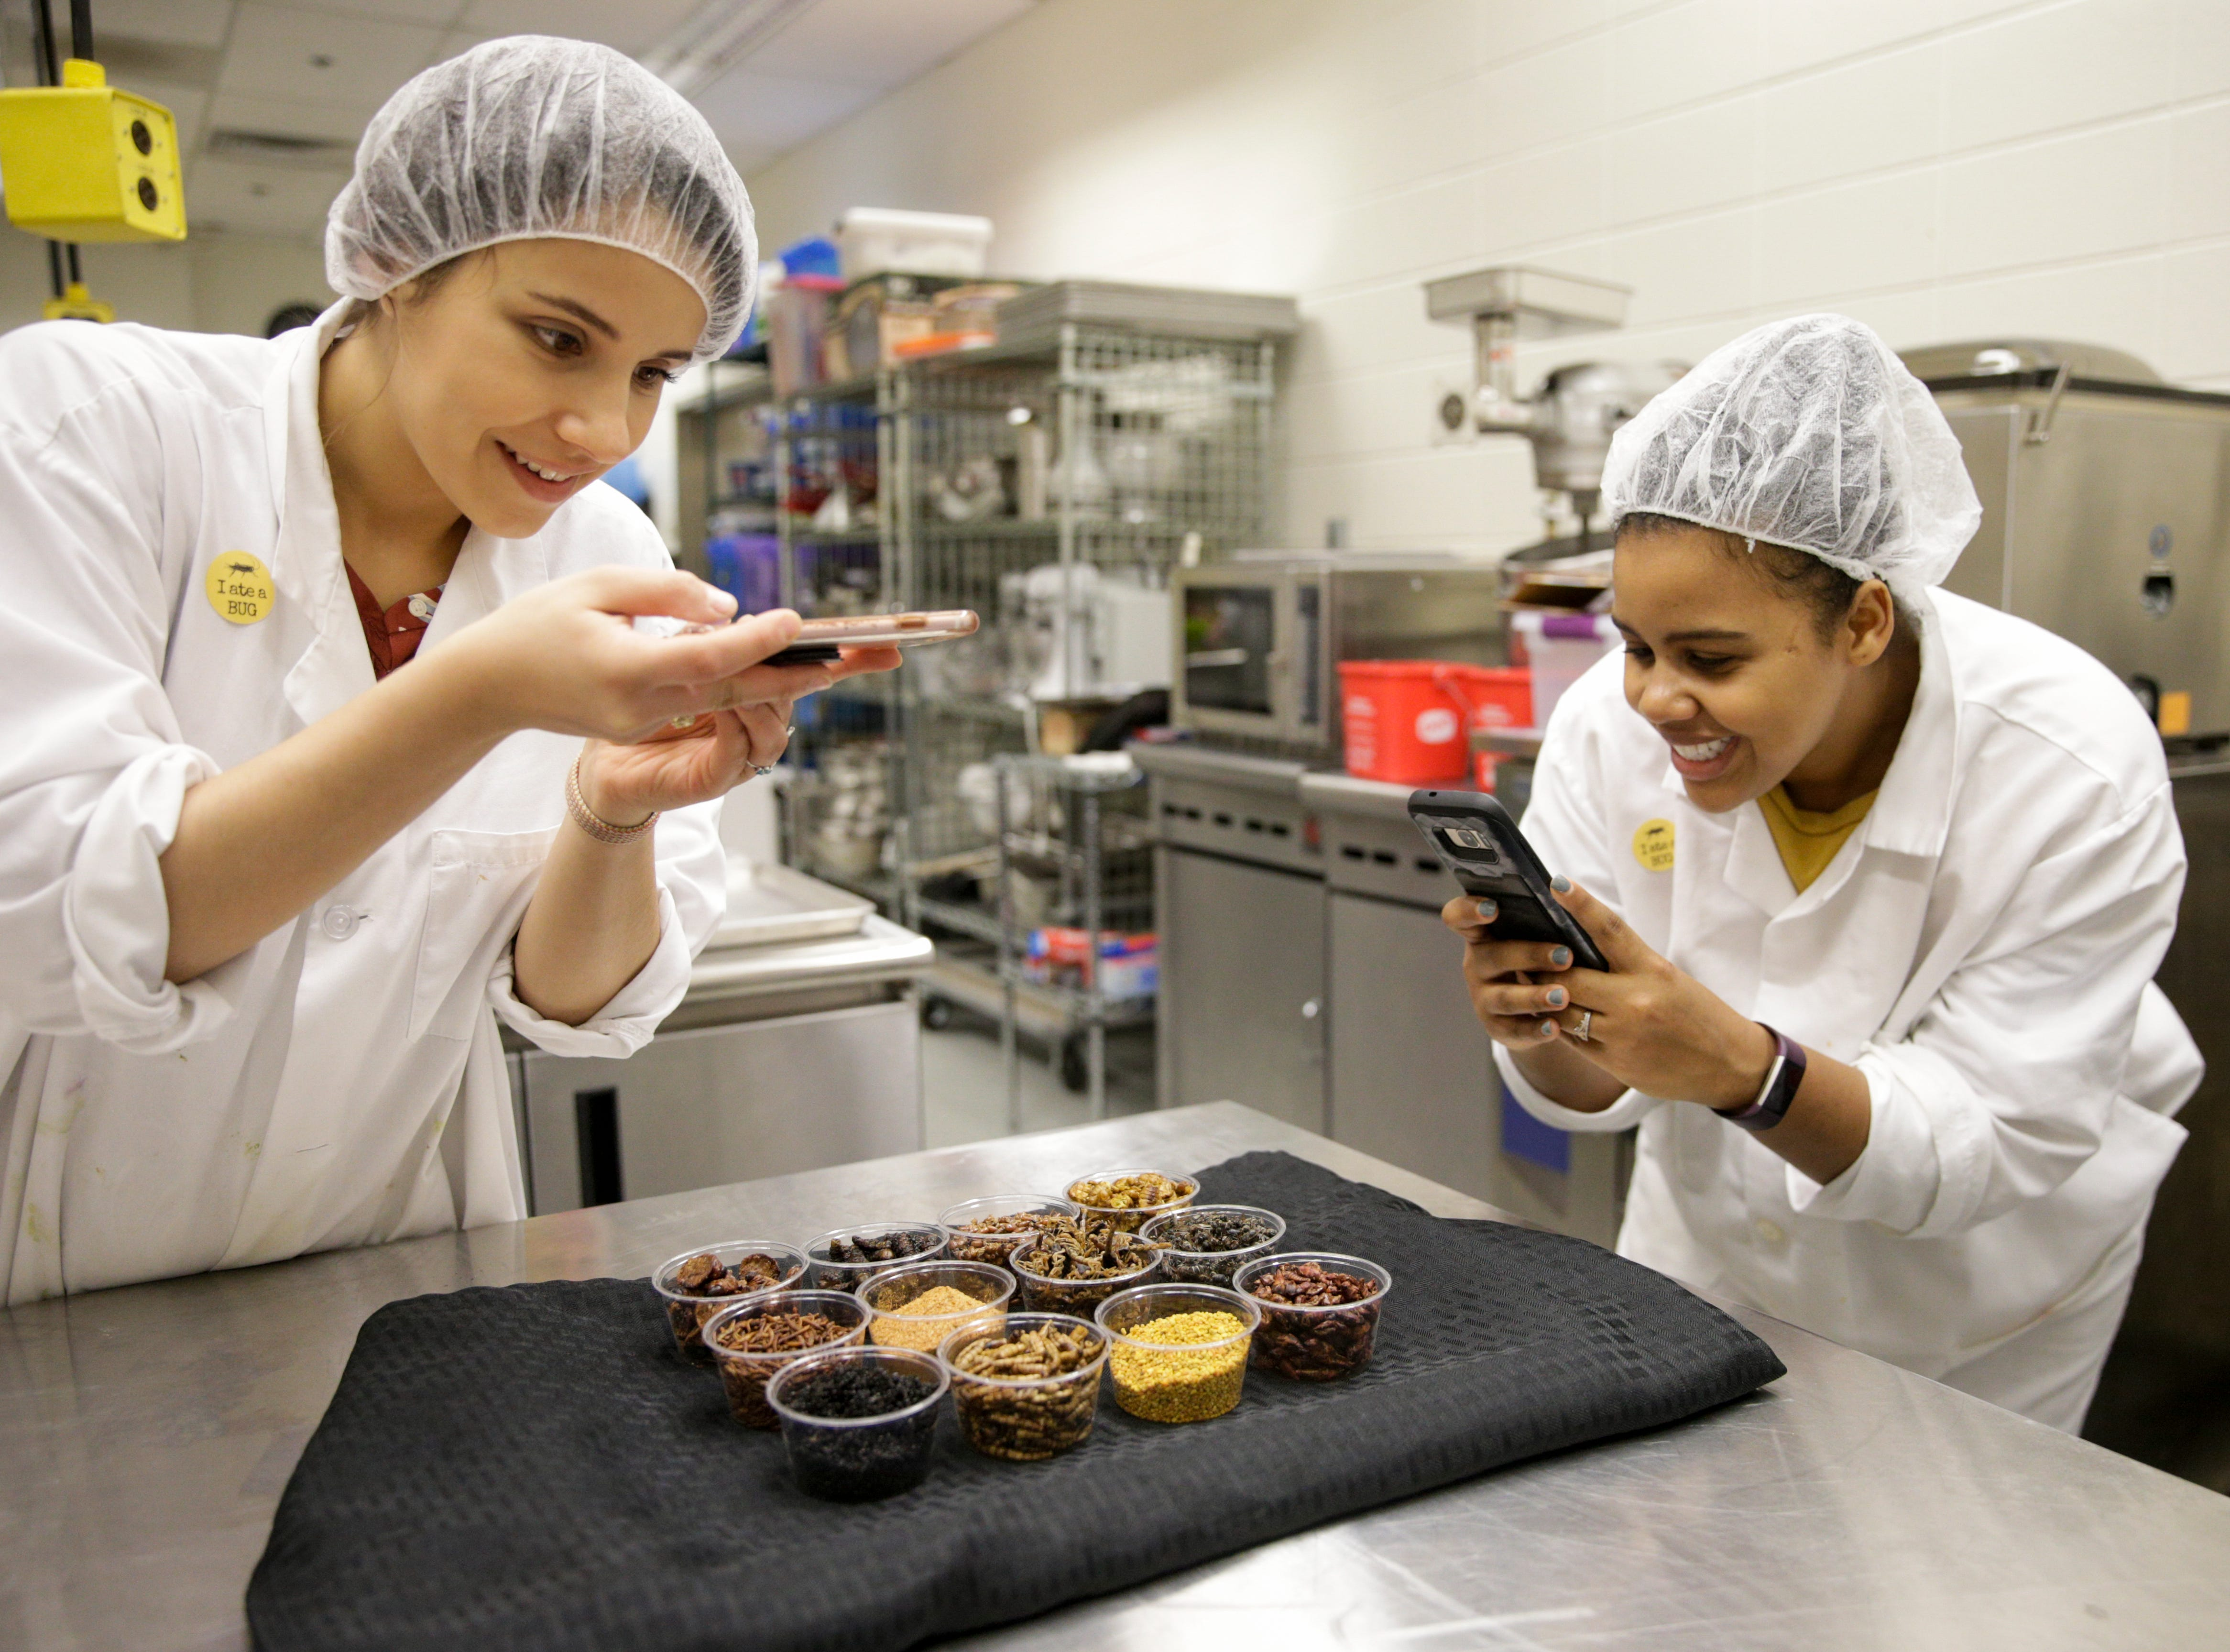 Gabriela Calzada and Felicia Hall take photos of insects they will be cooking with, Friday, April 5, 2019, at Purdue University in West Lafayette. The insects will be incorporated into Joespeh Yoon's dishes and served at Spring Fest on Saturday.